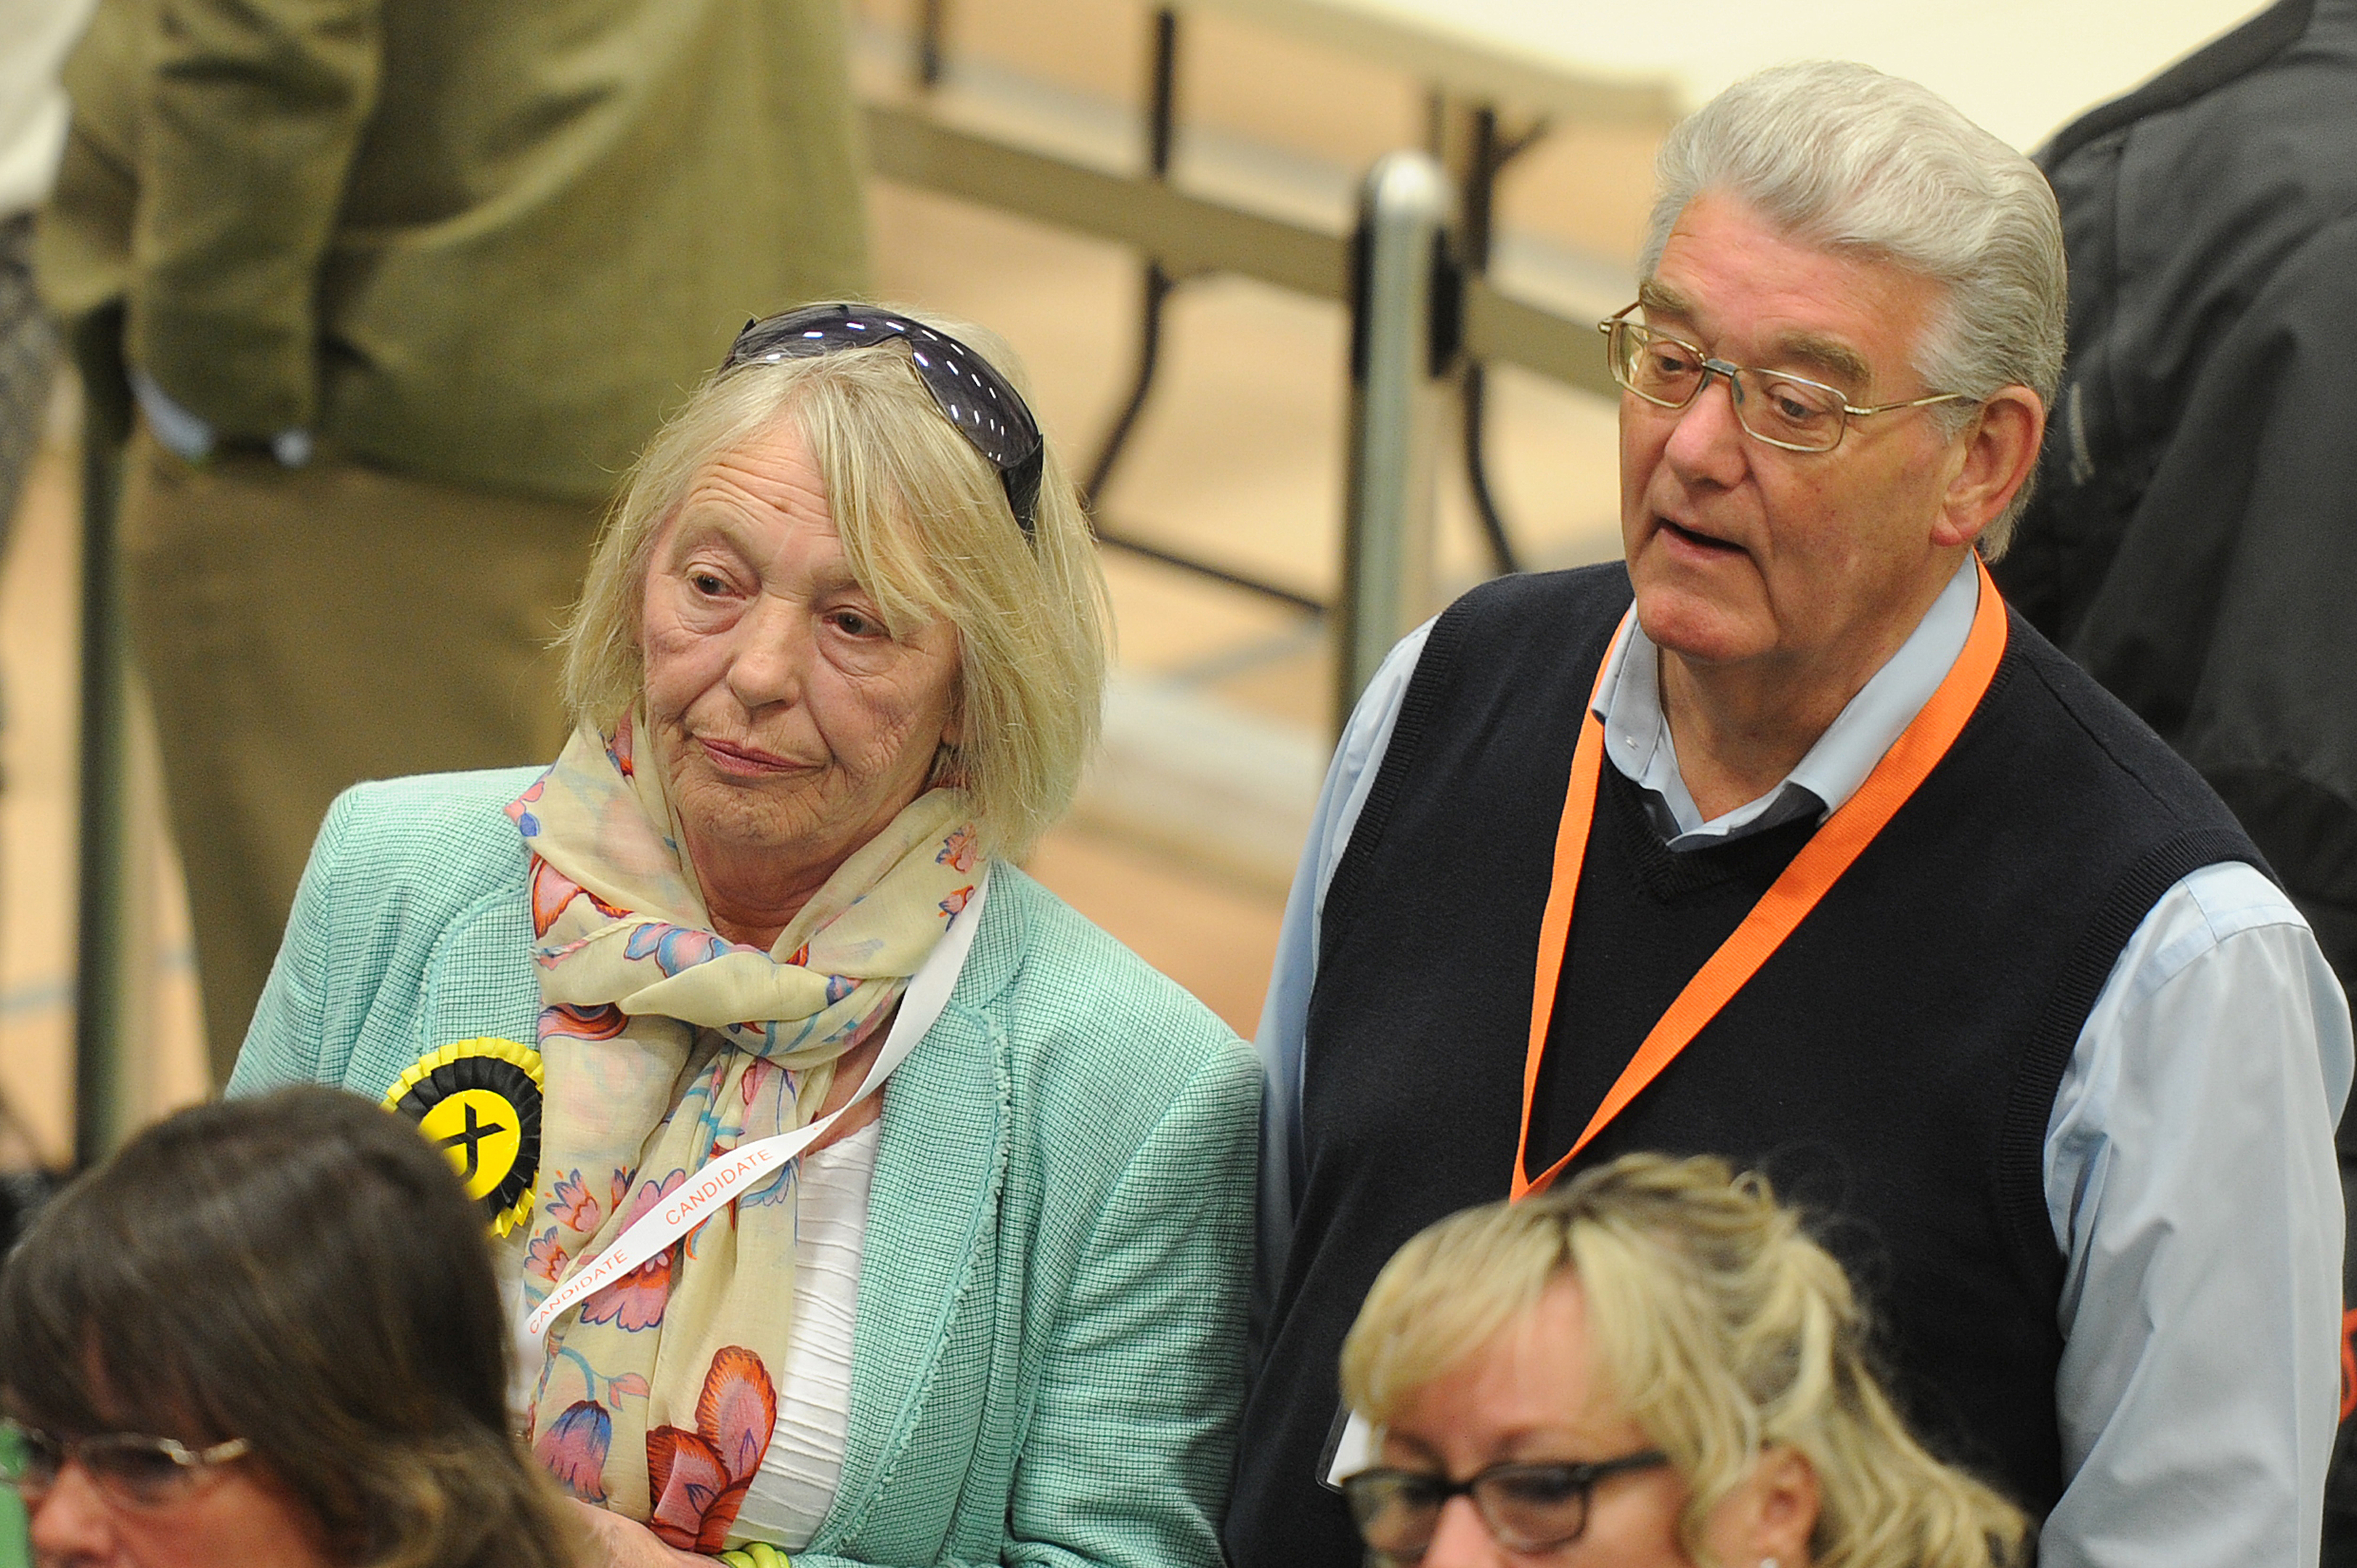 Glennis Middleton, who lost her seat in Forfar, with her husband Bill